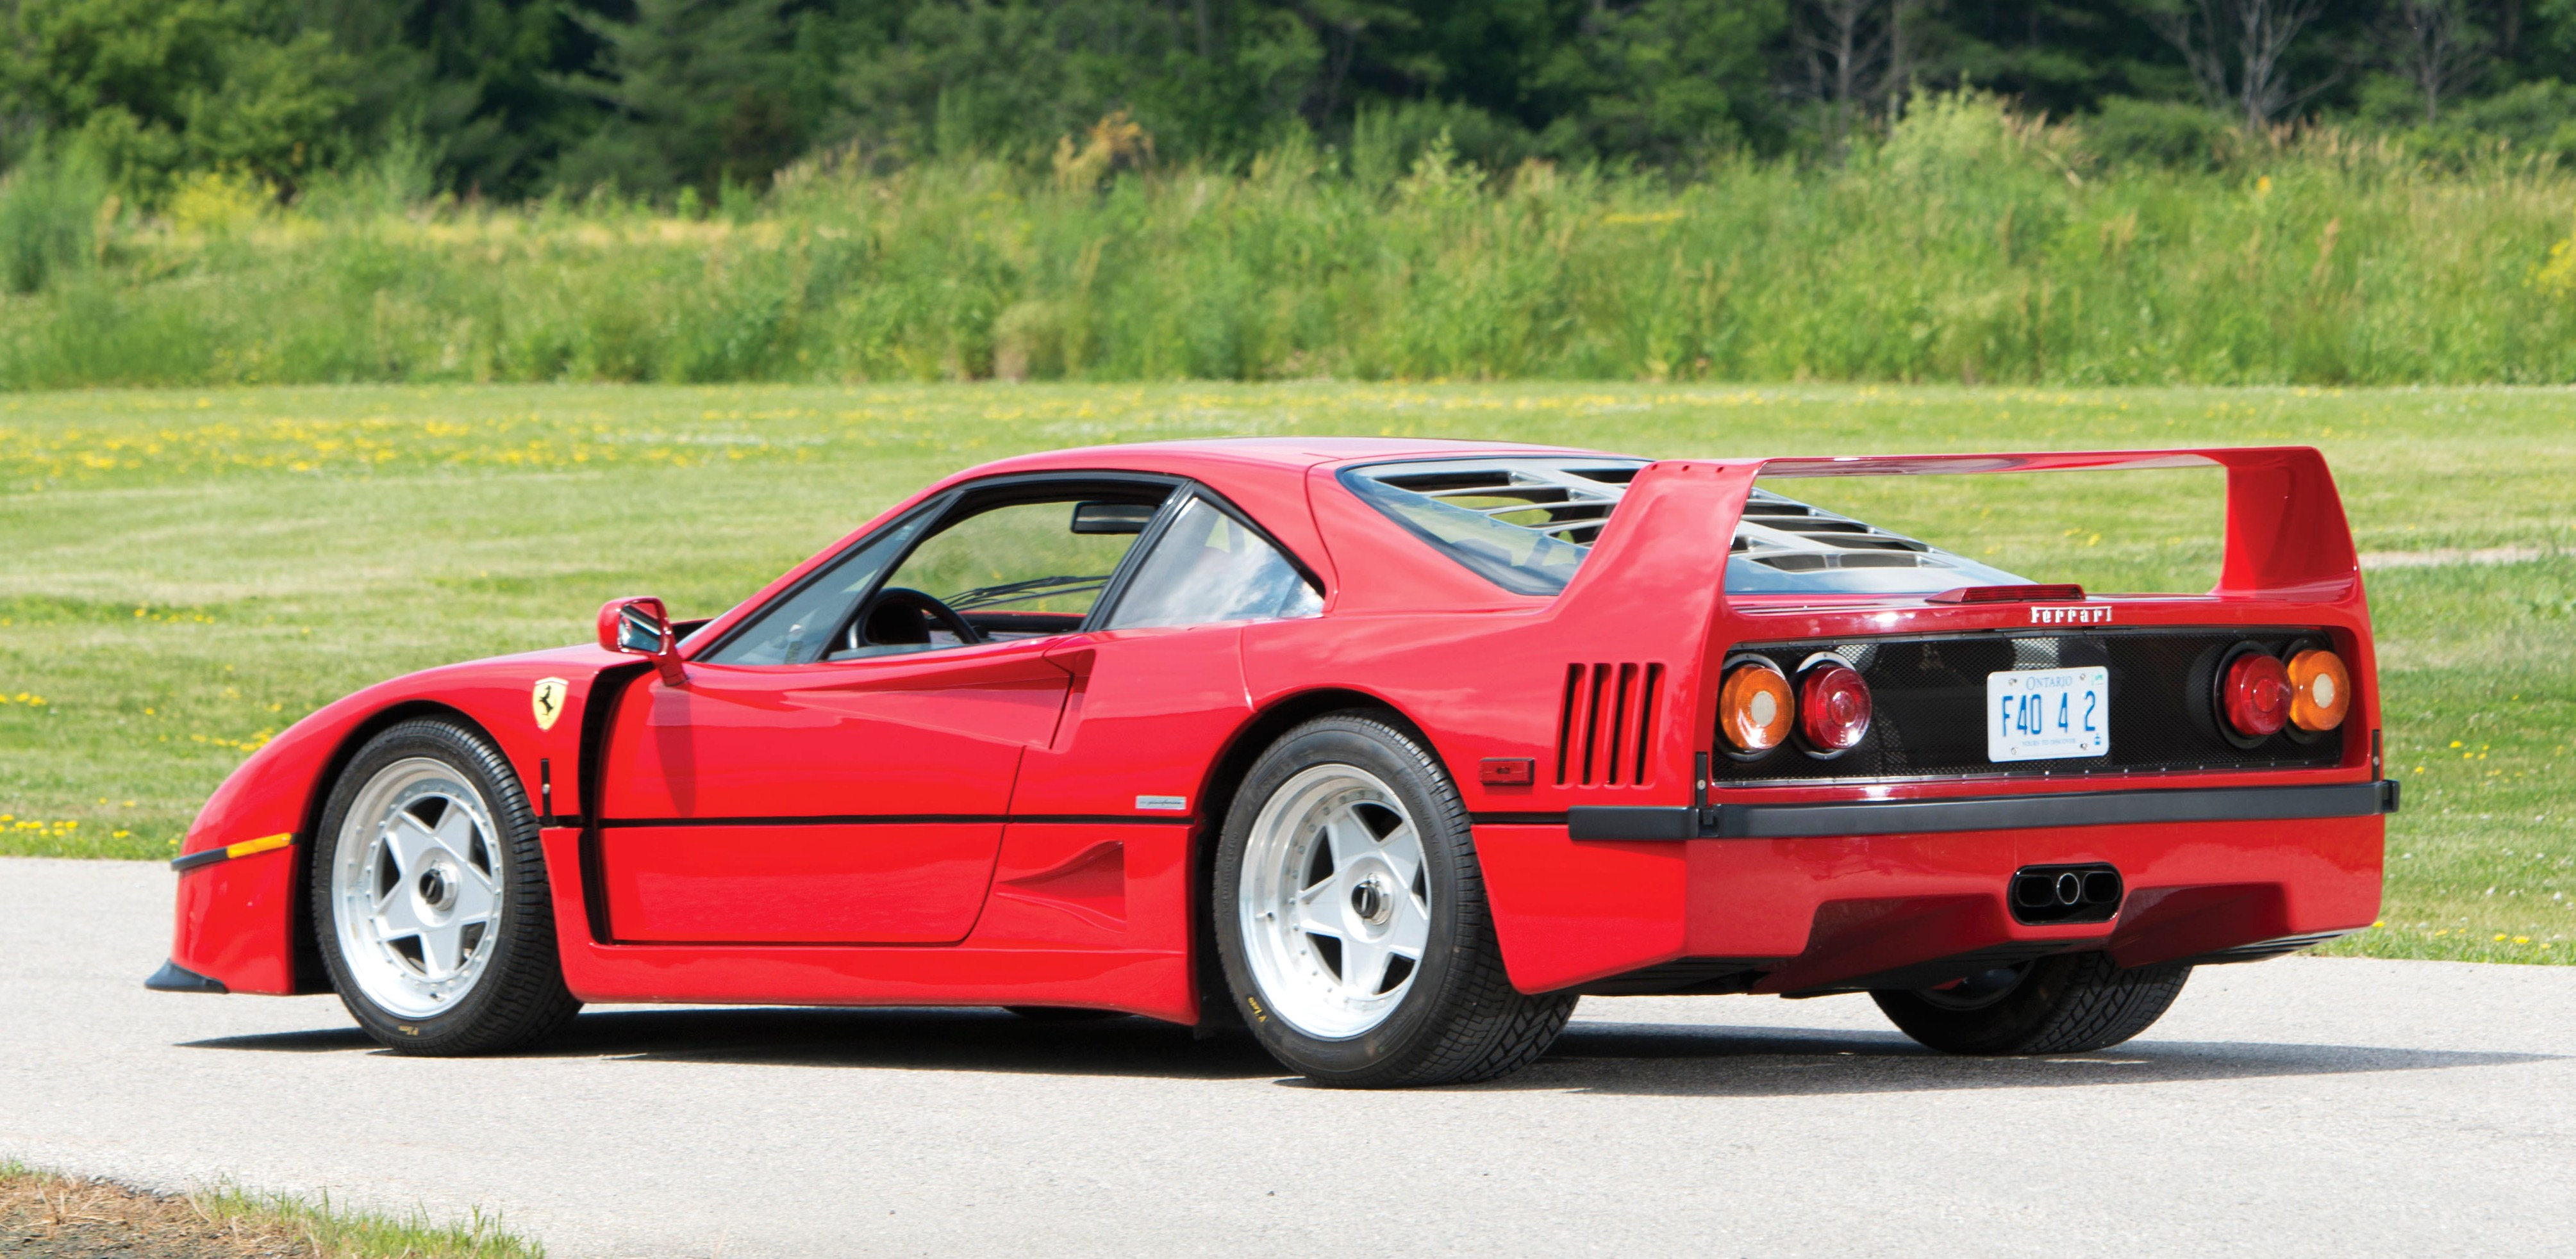 Ferrari F40 Once Owned By Rod Stewart Goes To Auction